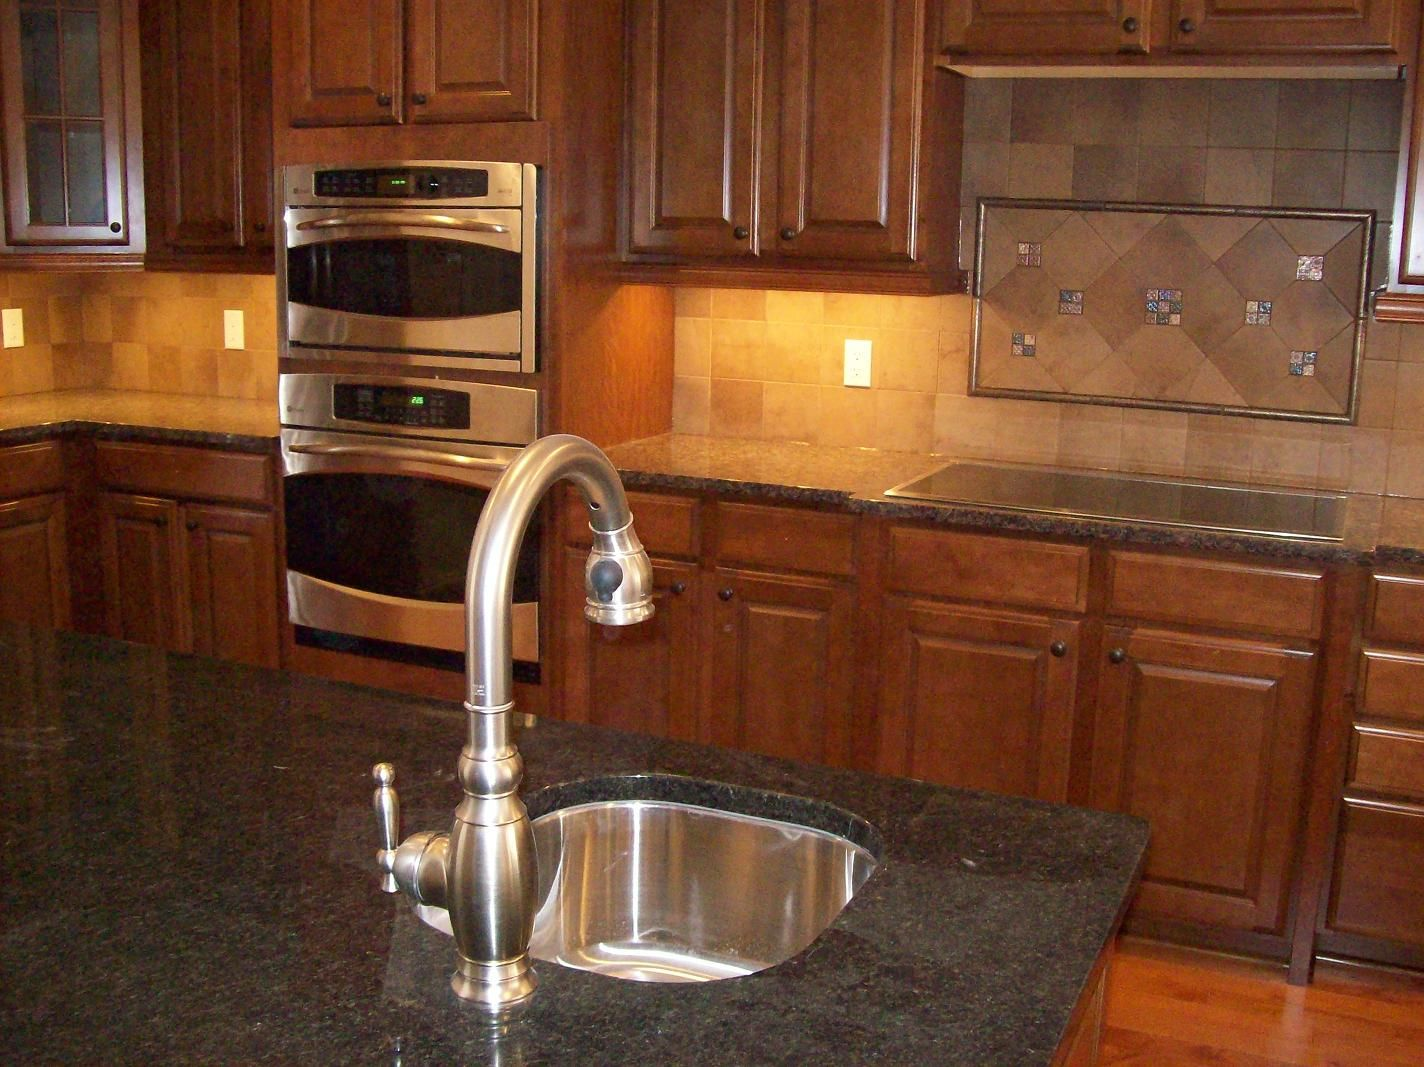 10 simple backsplash ideas for your kitchen backsplash Kitchen self design